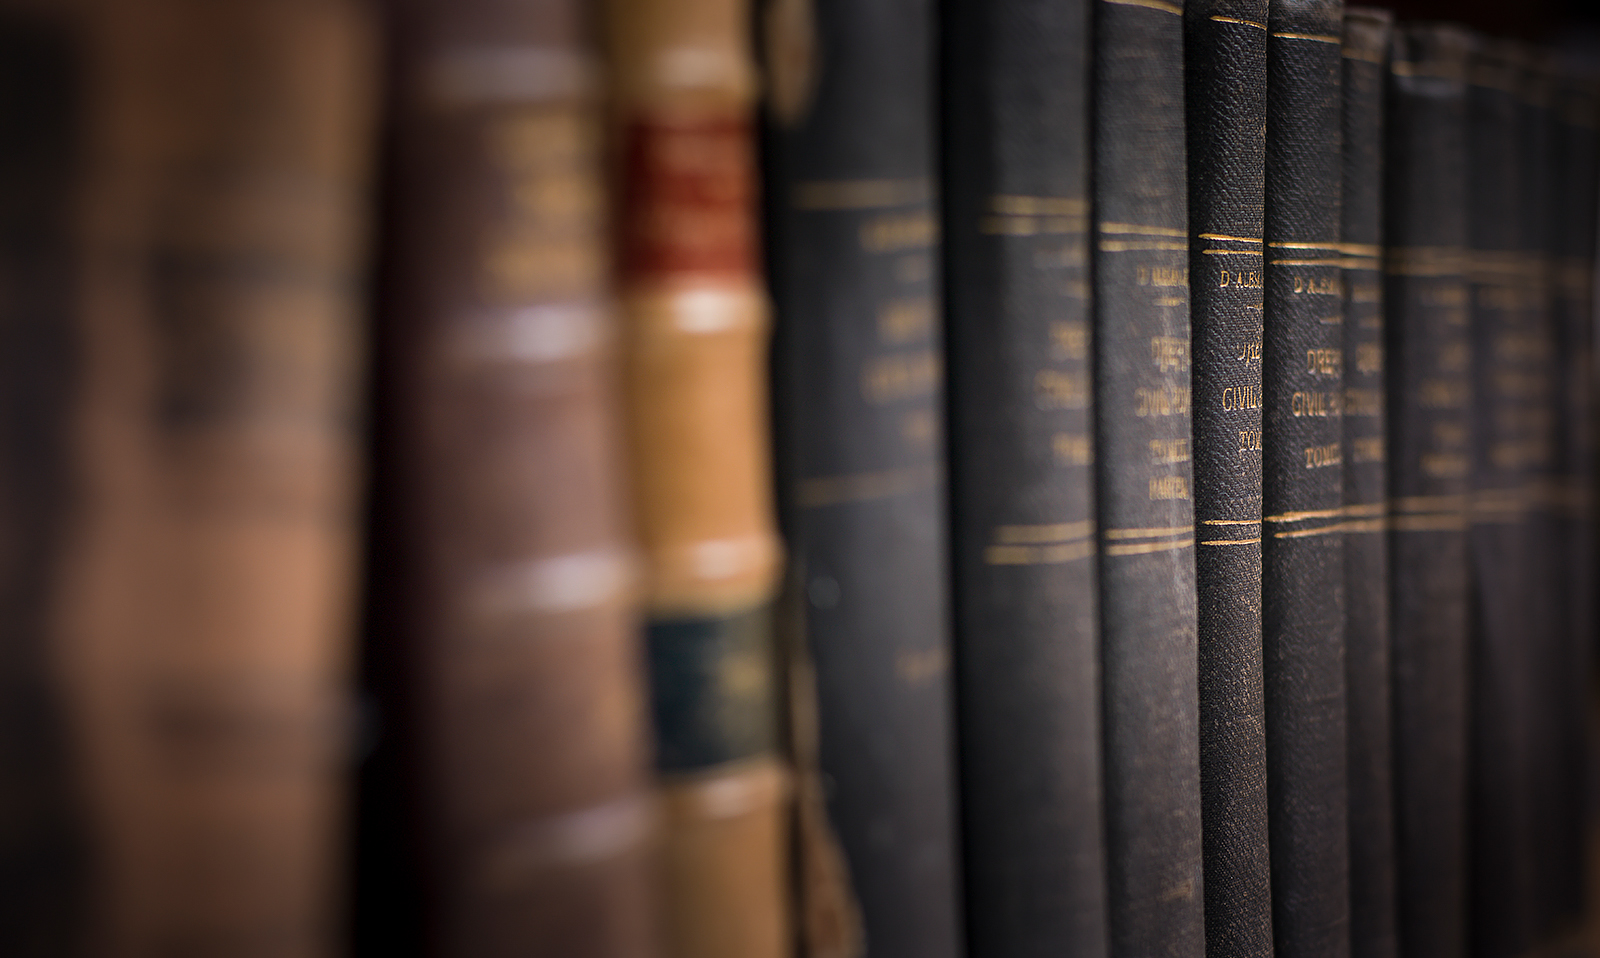 Leather bound legal books